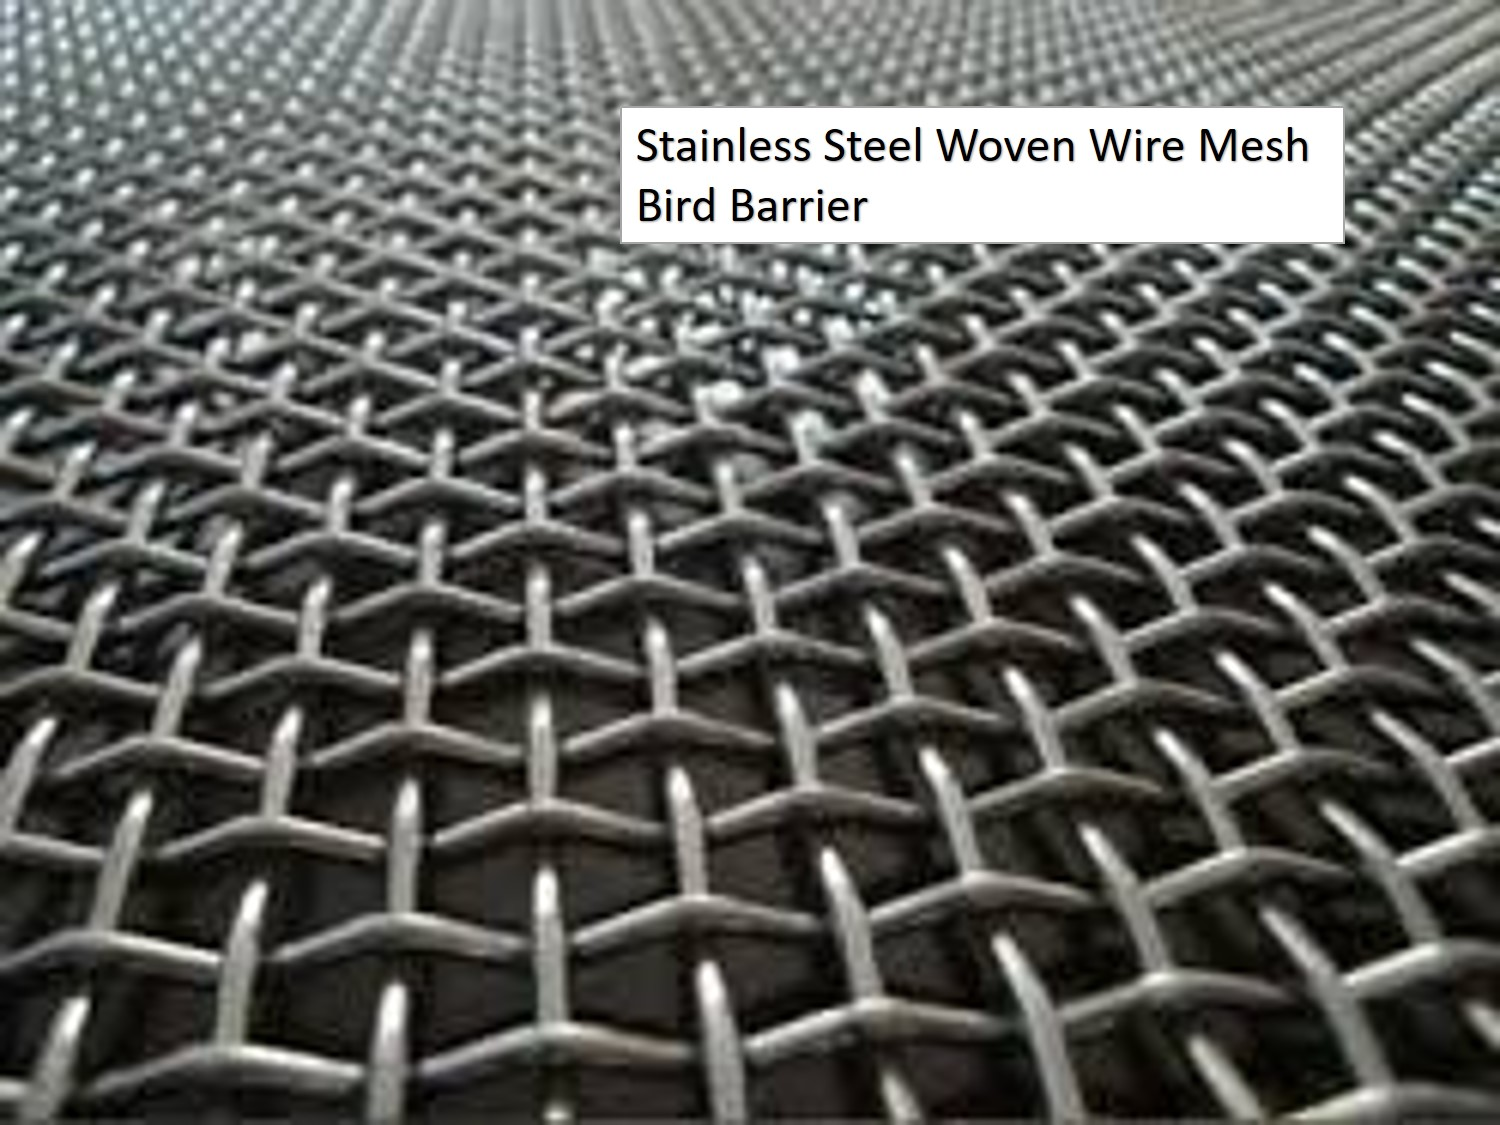 Stainless Steel Woven Wire Mesh Bird Barrier